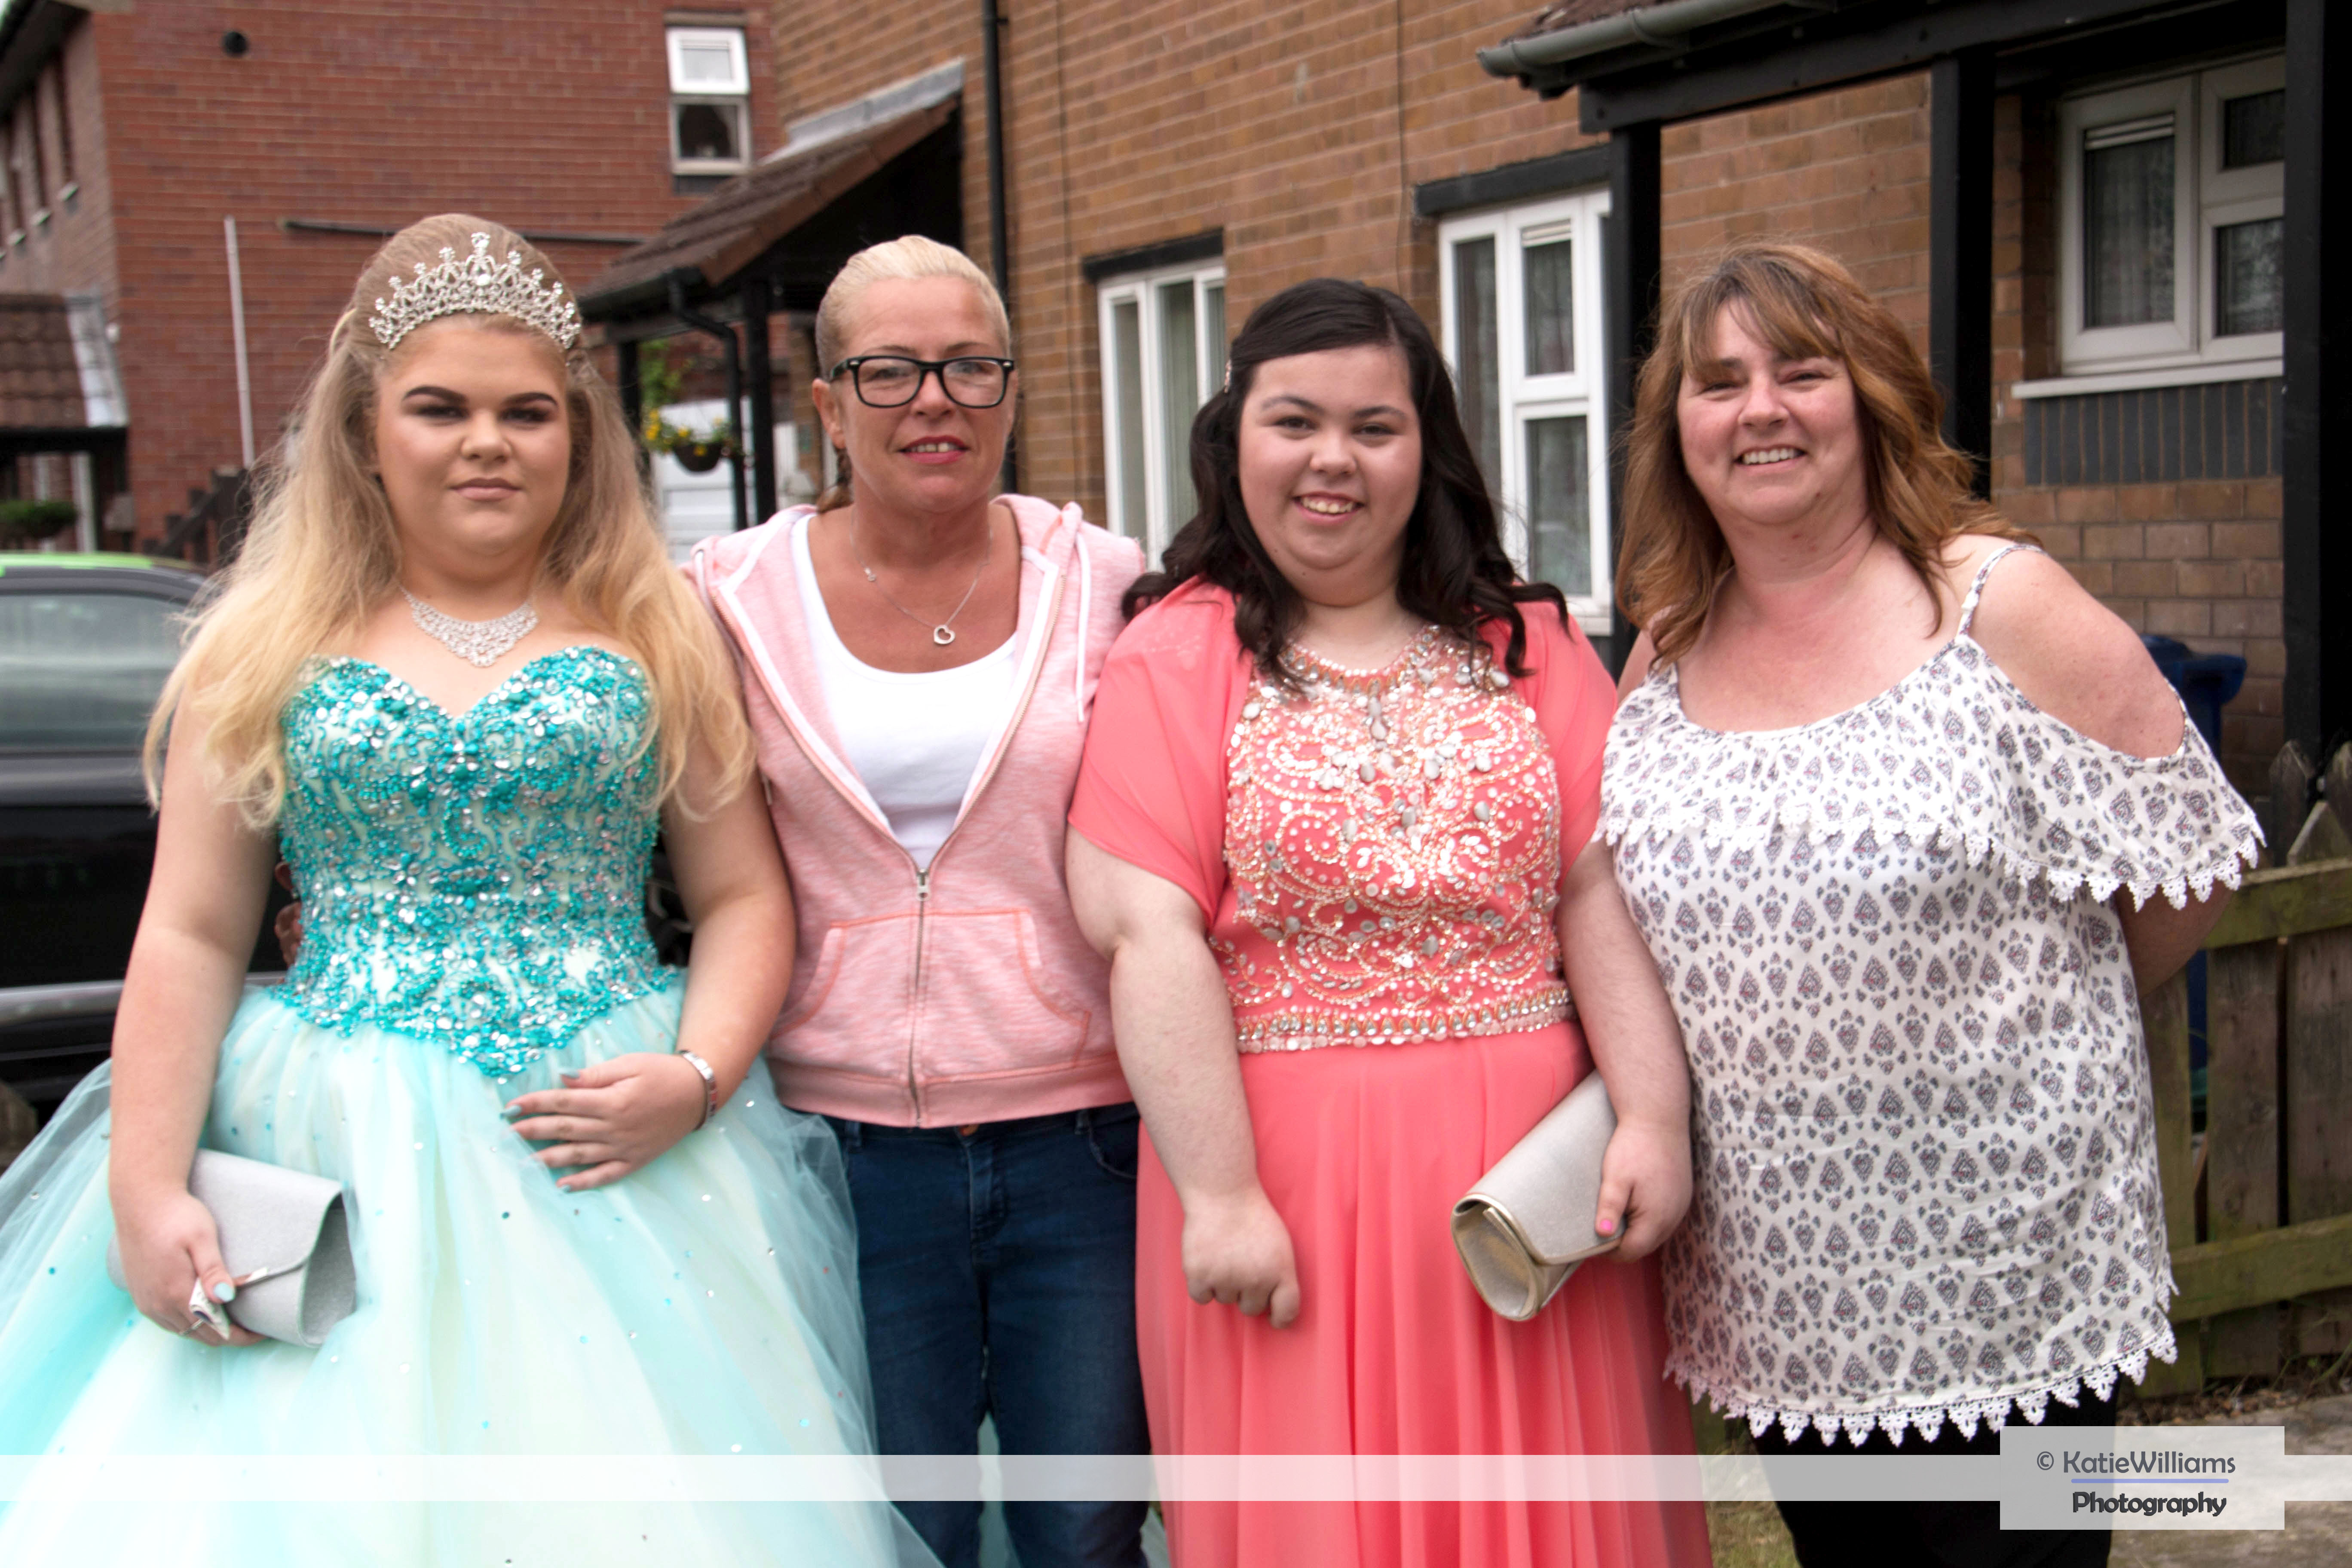 The Prom of Chloe Amy Williams